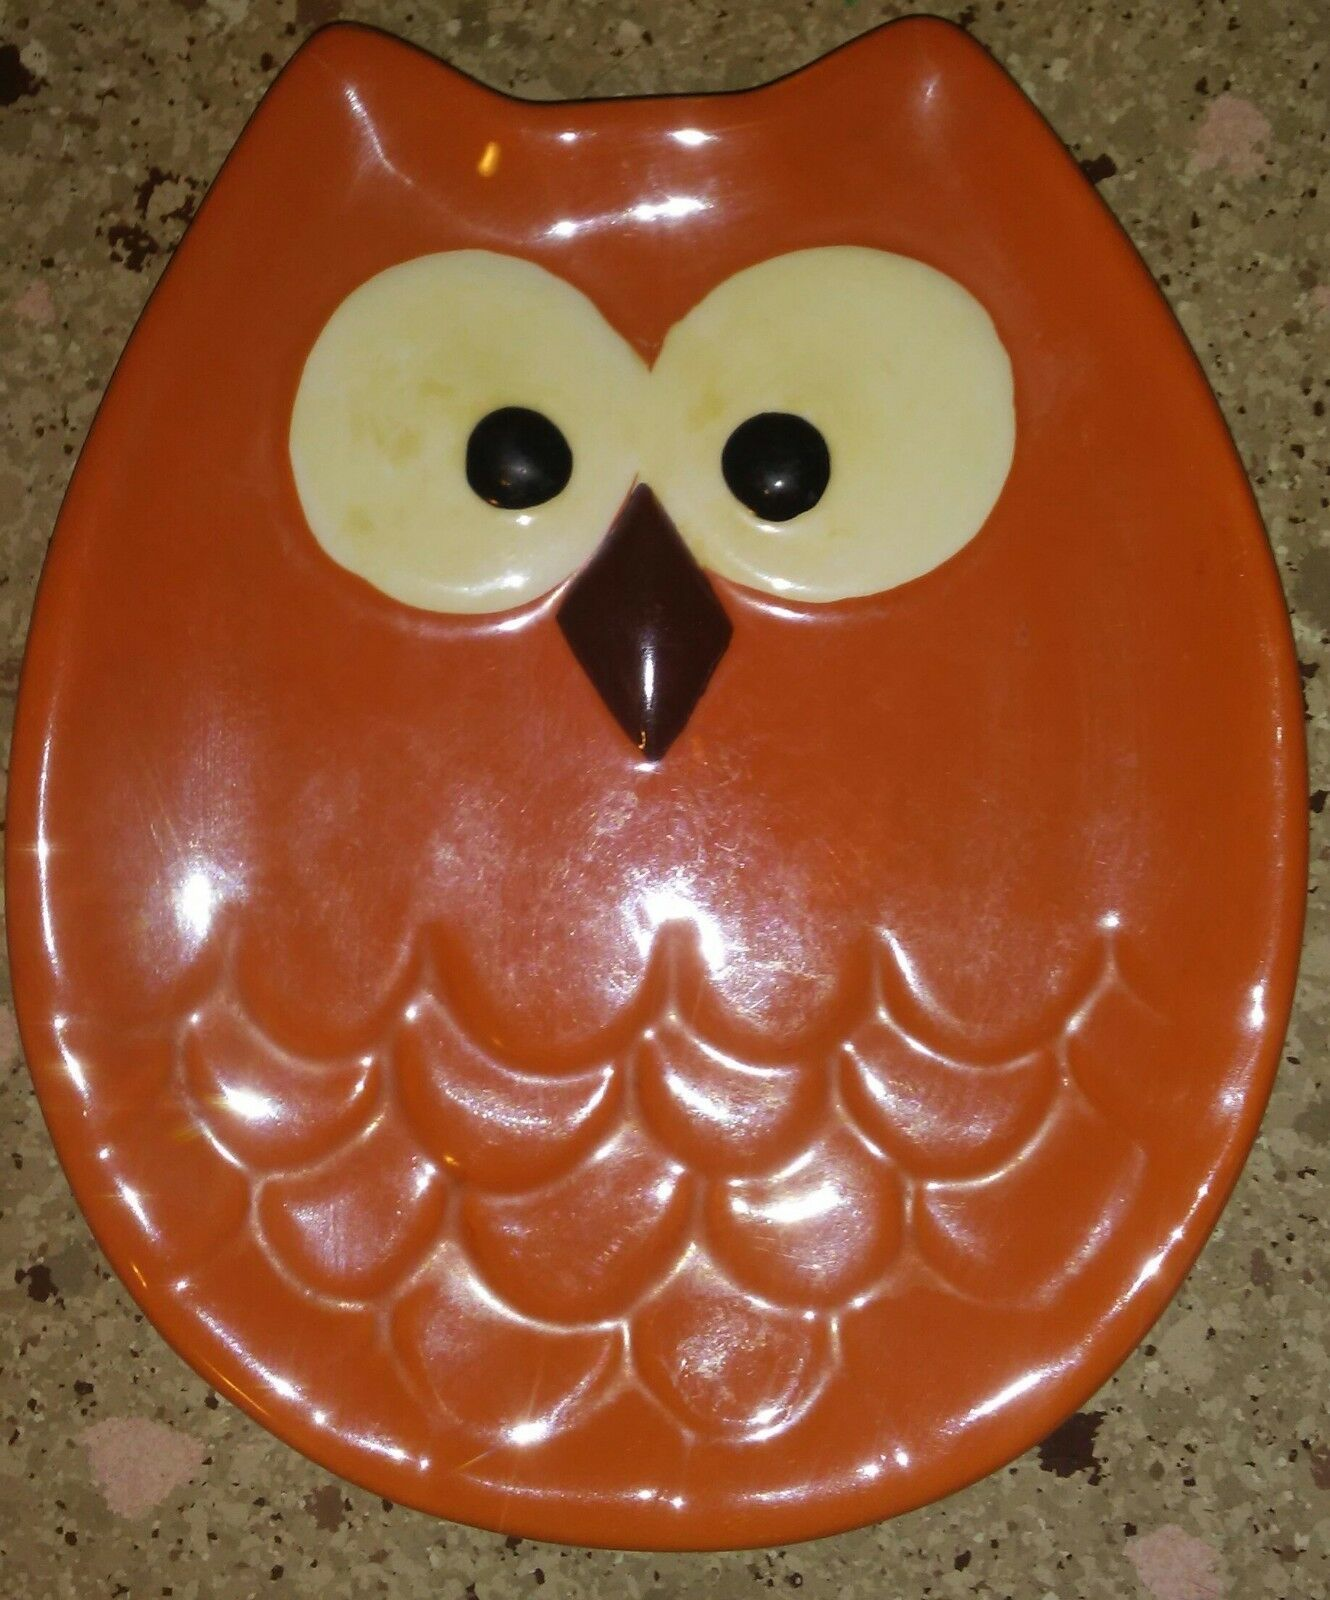 Lot of 2 Ceramic Owl Shaped Plates Candy Dish Trinkets